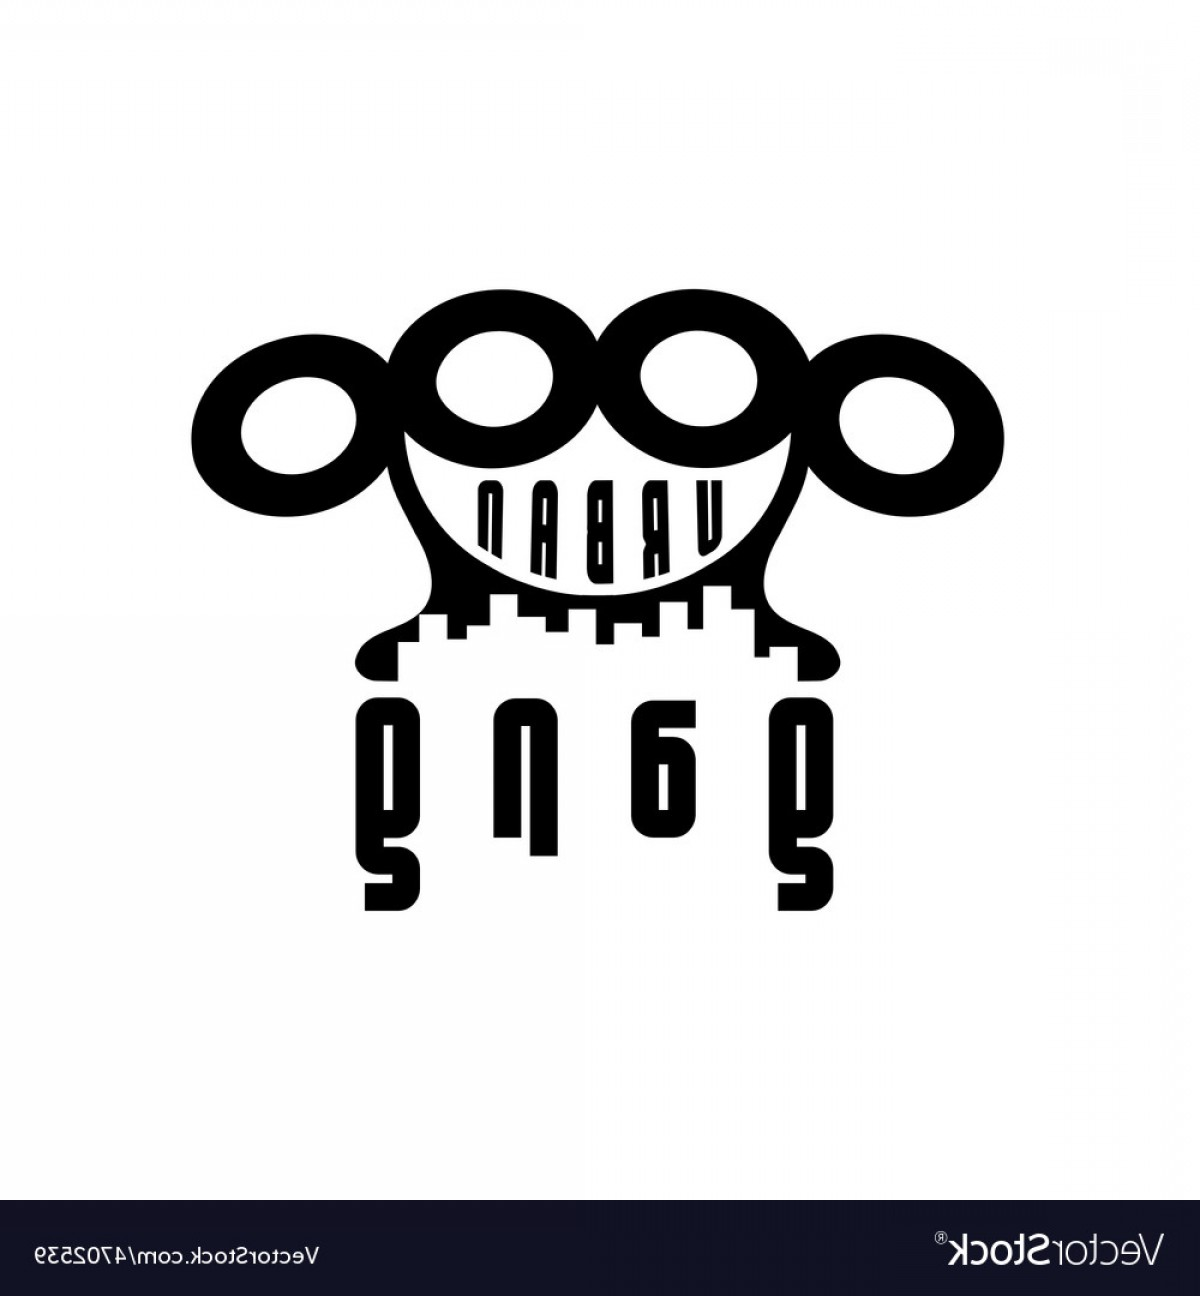 Gang Vector Graphics: Urban Gang Emblem With Brass Knuckles Vector